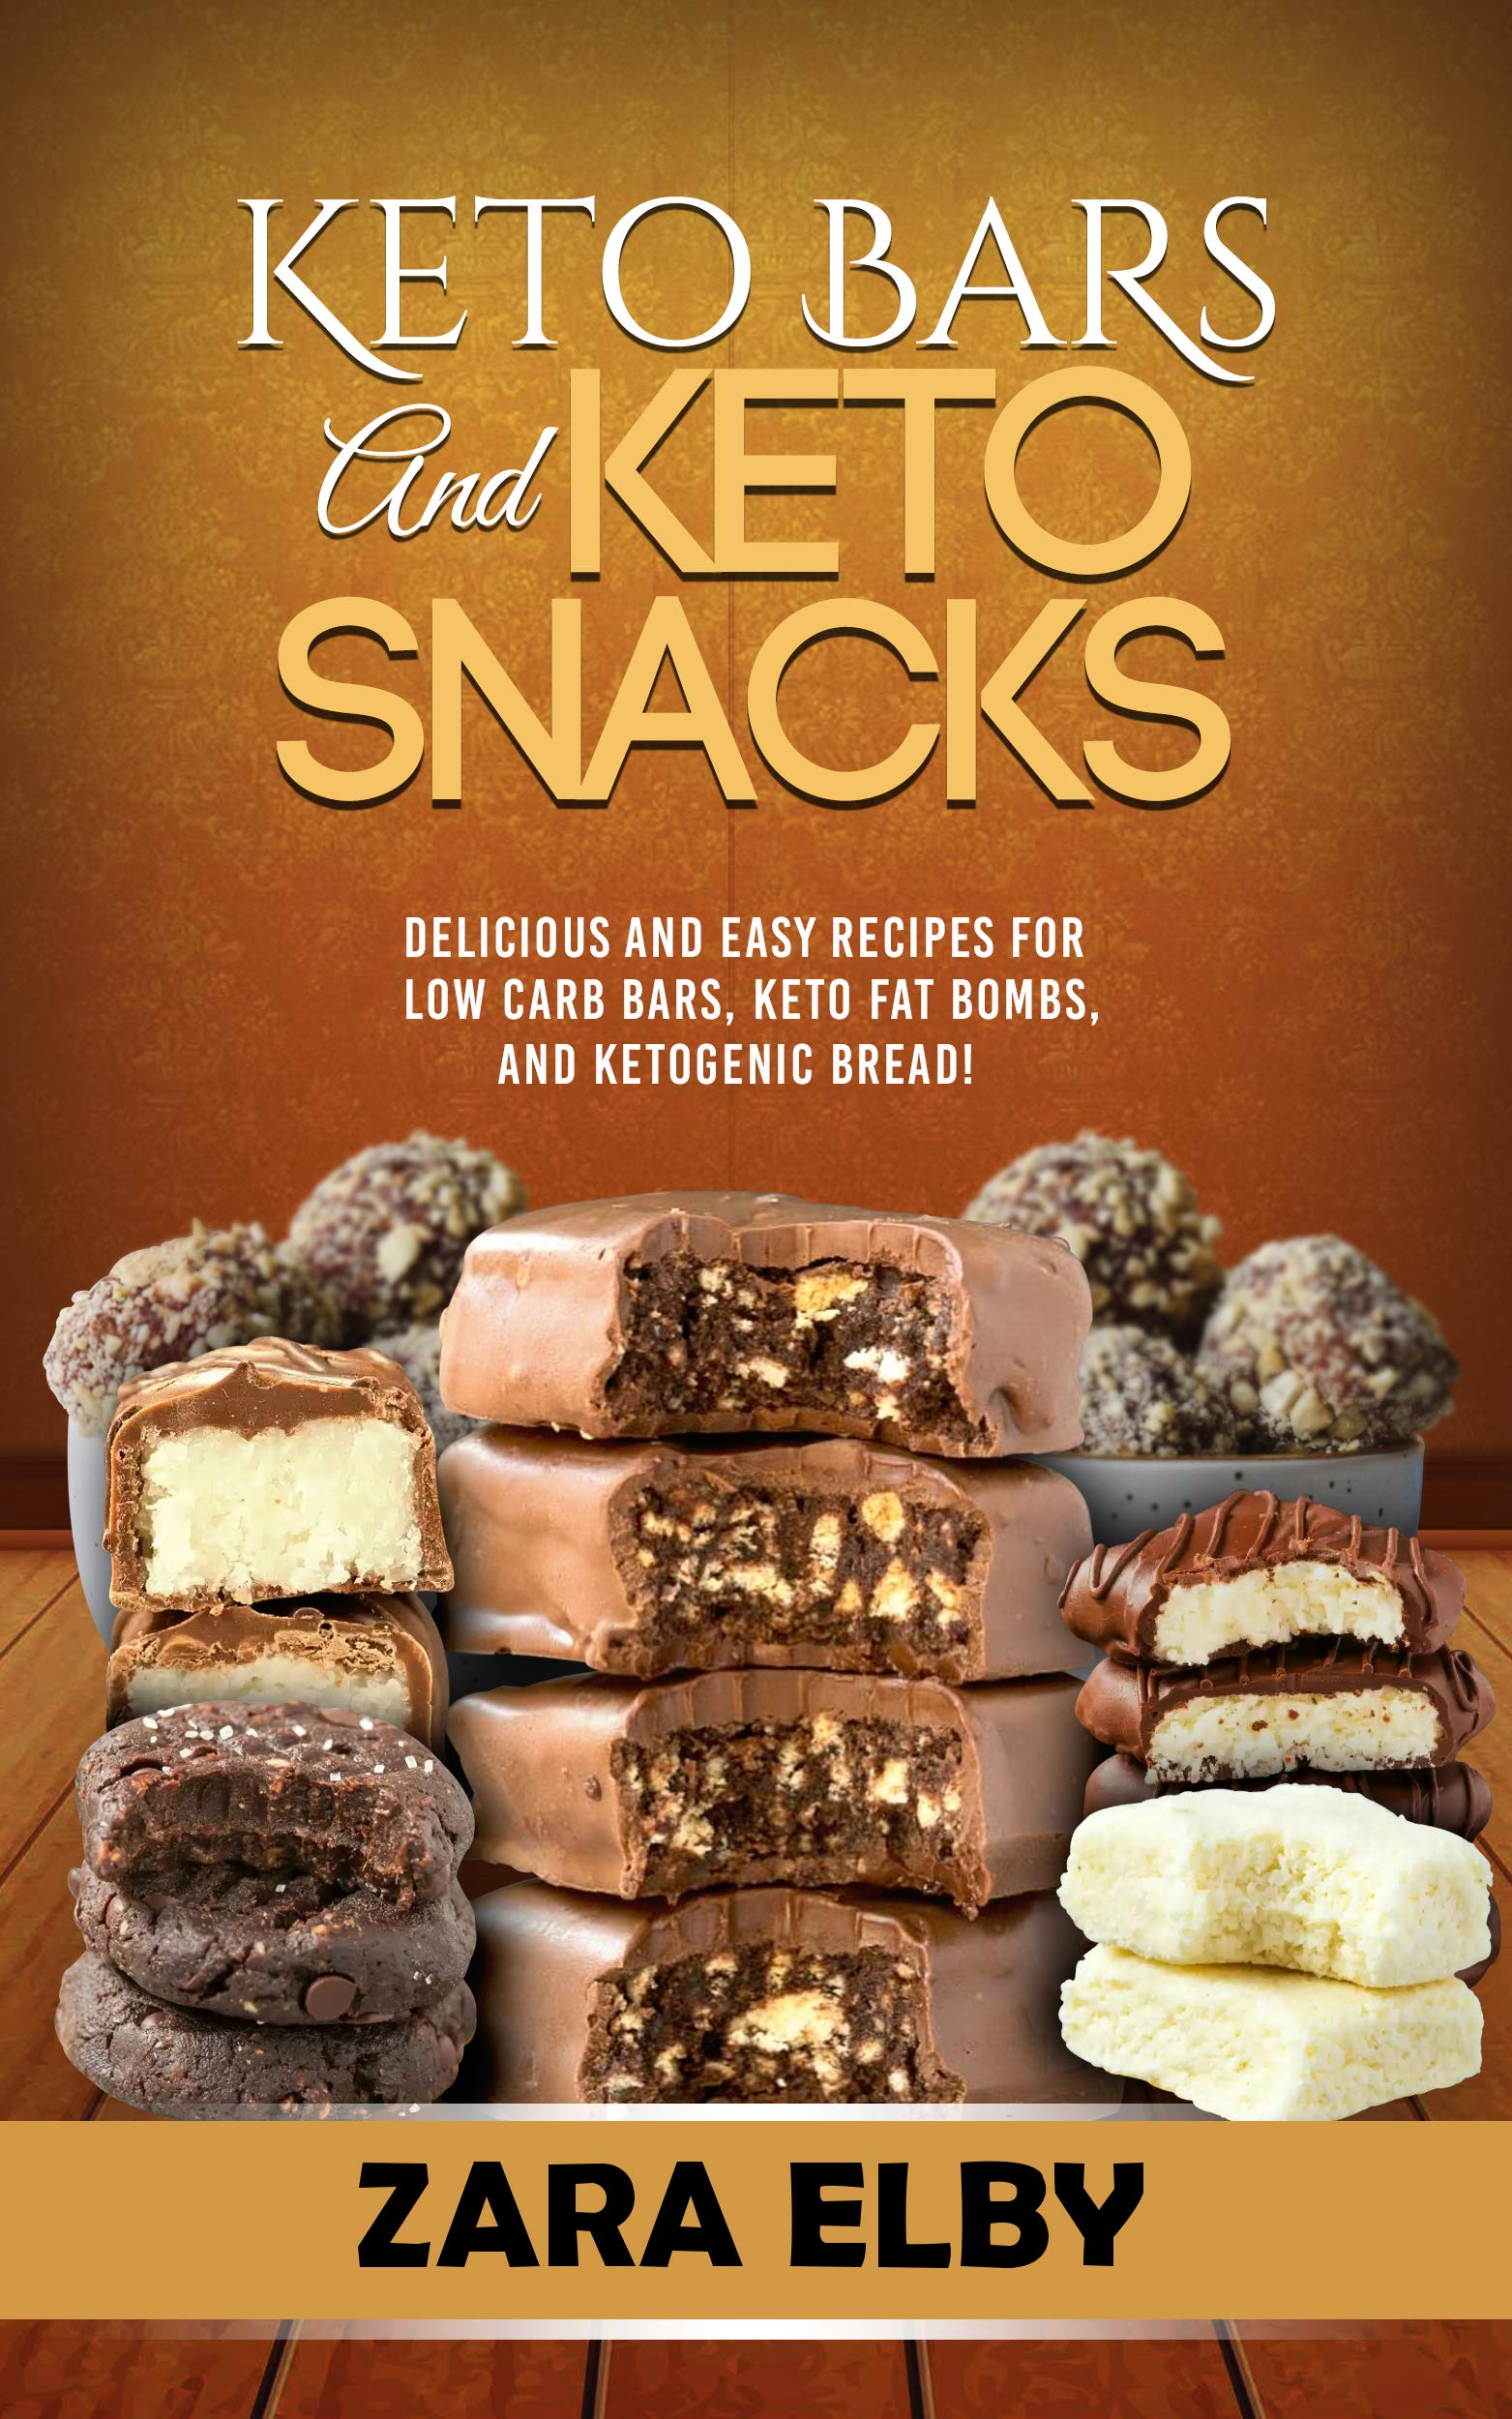 Image OfKeto Bars And Keto Snacks: Delicious And Easy Recipes For Low Carb Bars, Keto Fat Bombs, And Ketogenic Bread!